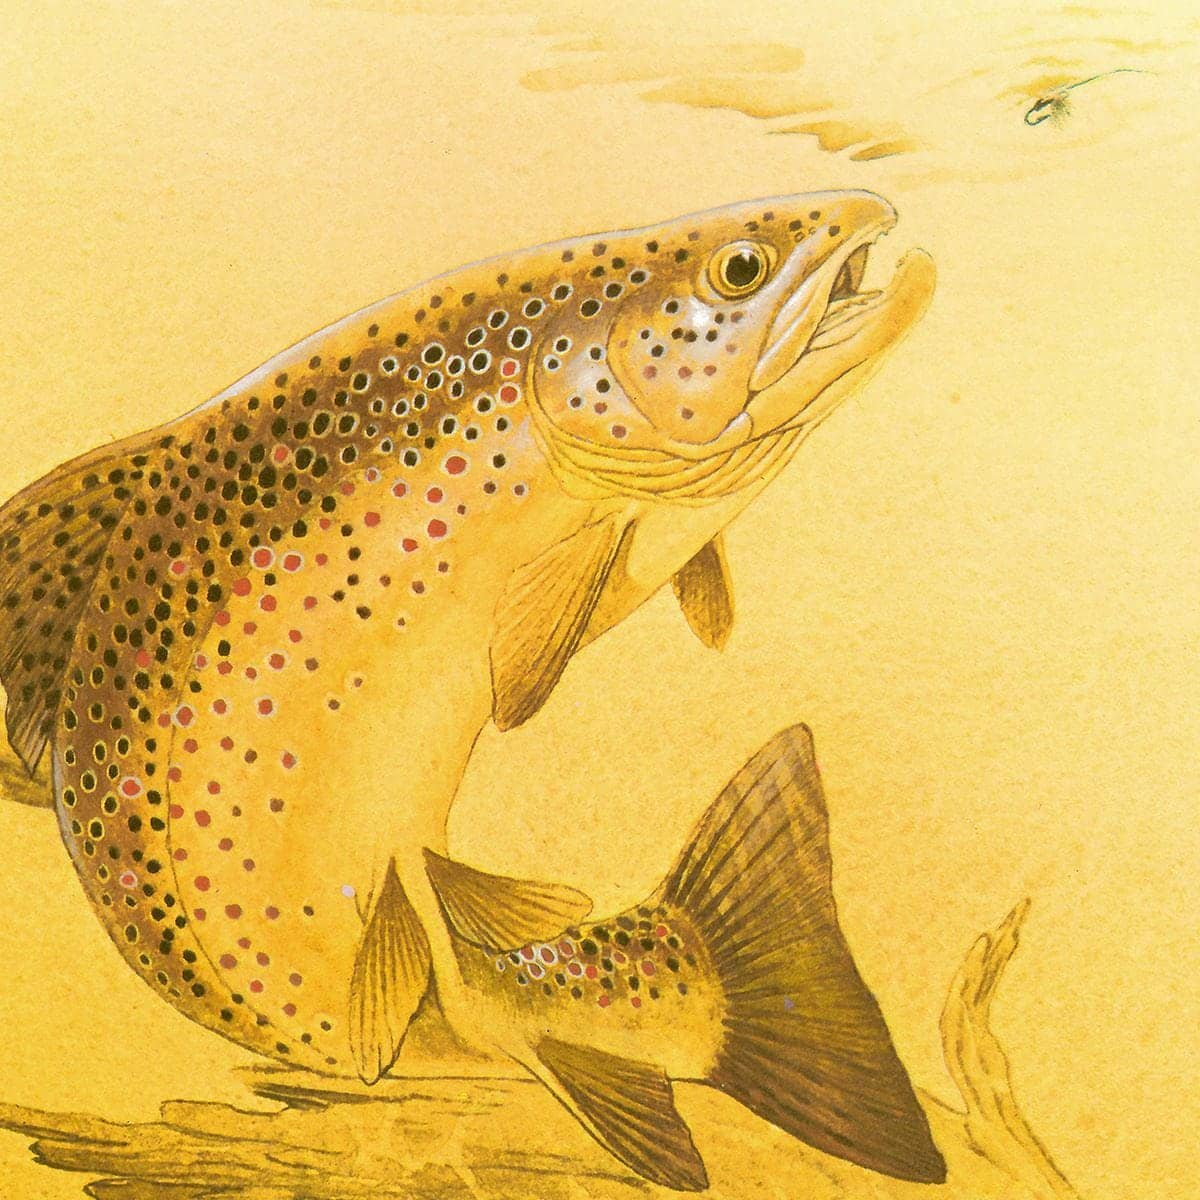 Brown Trout - Art Print by Glen Loates from the Glen Loates Store